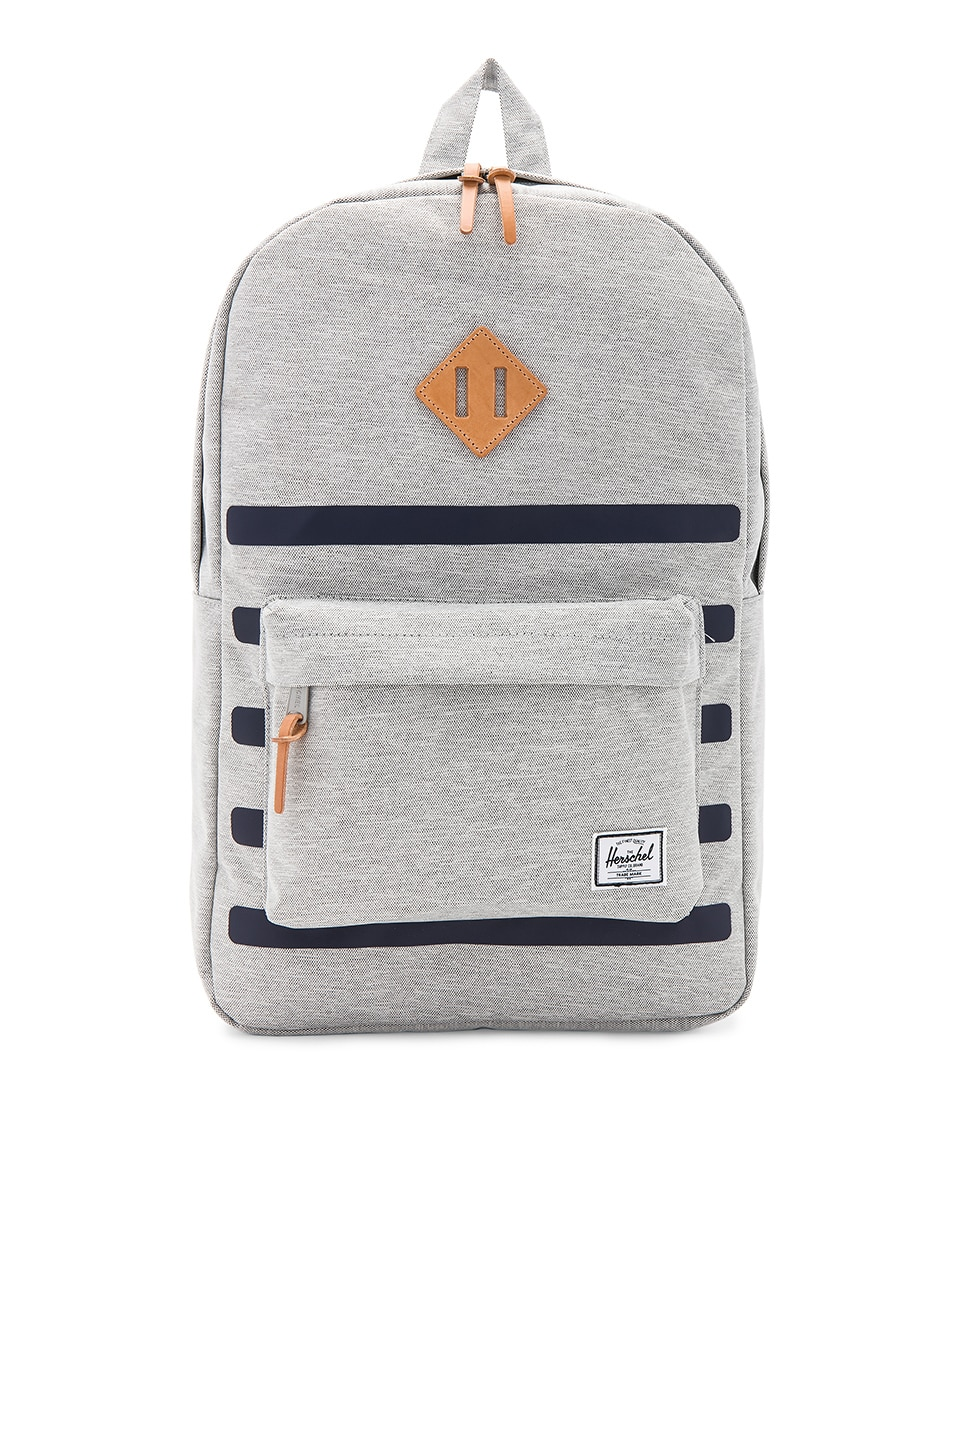 Heritage Backpack by Herschel Supply Co.